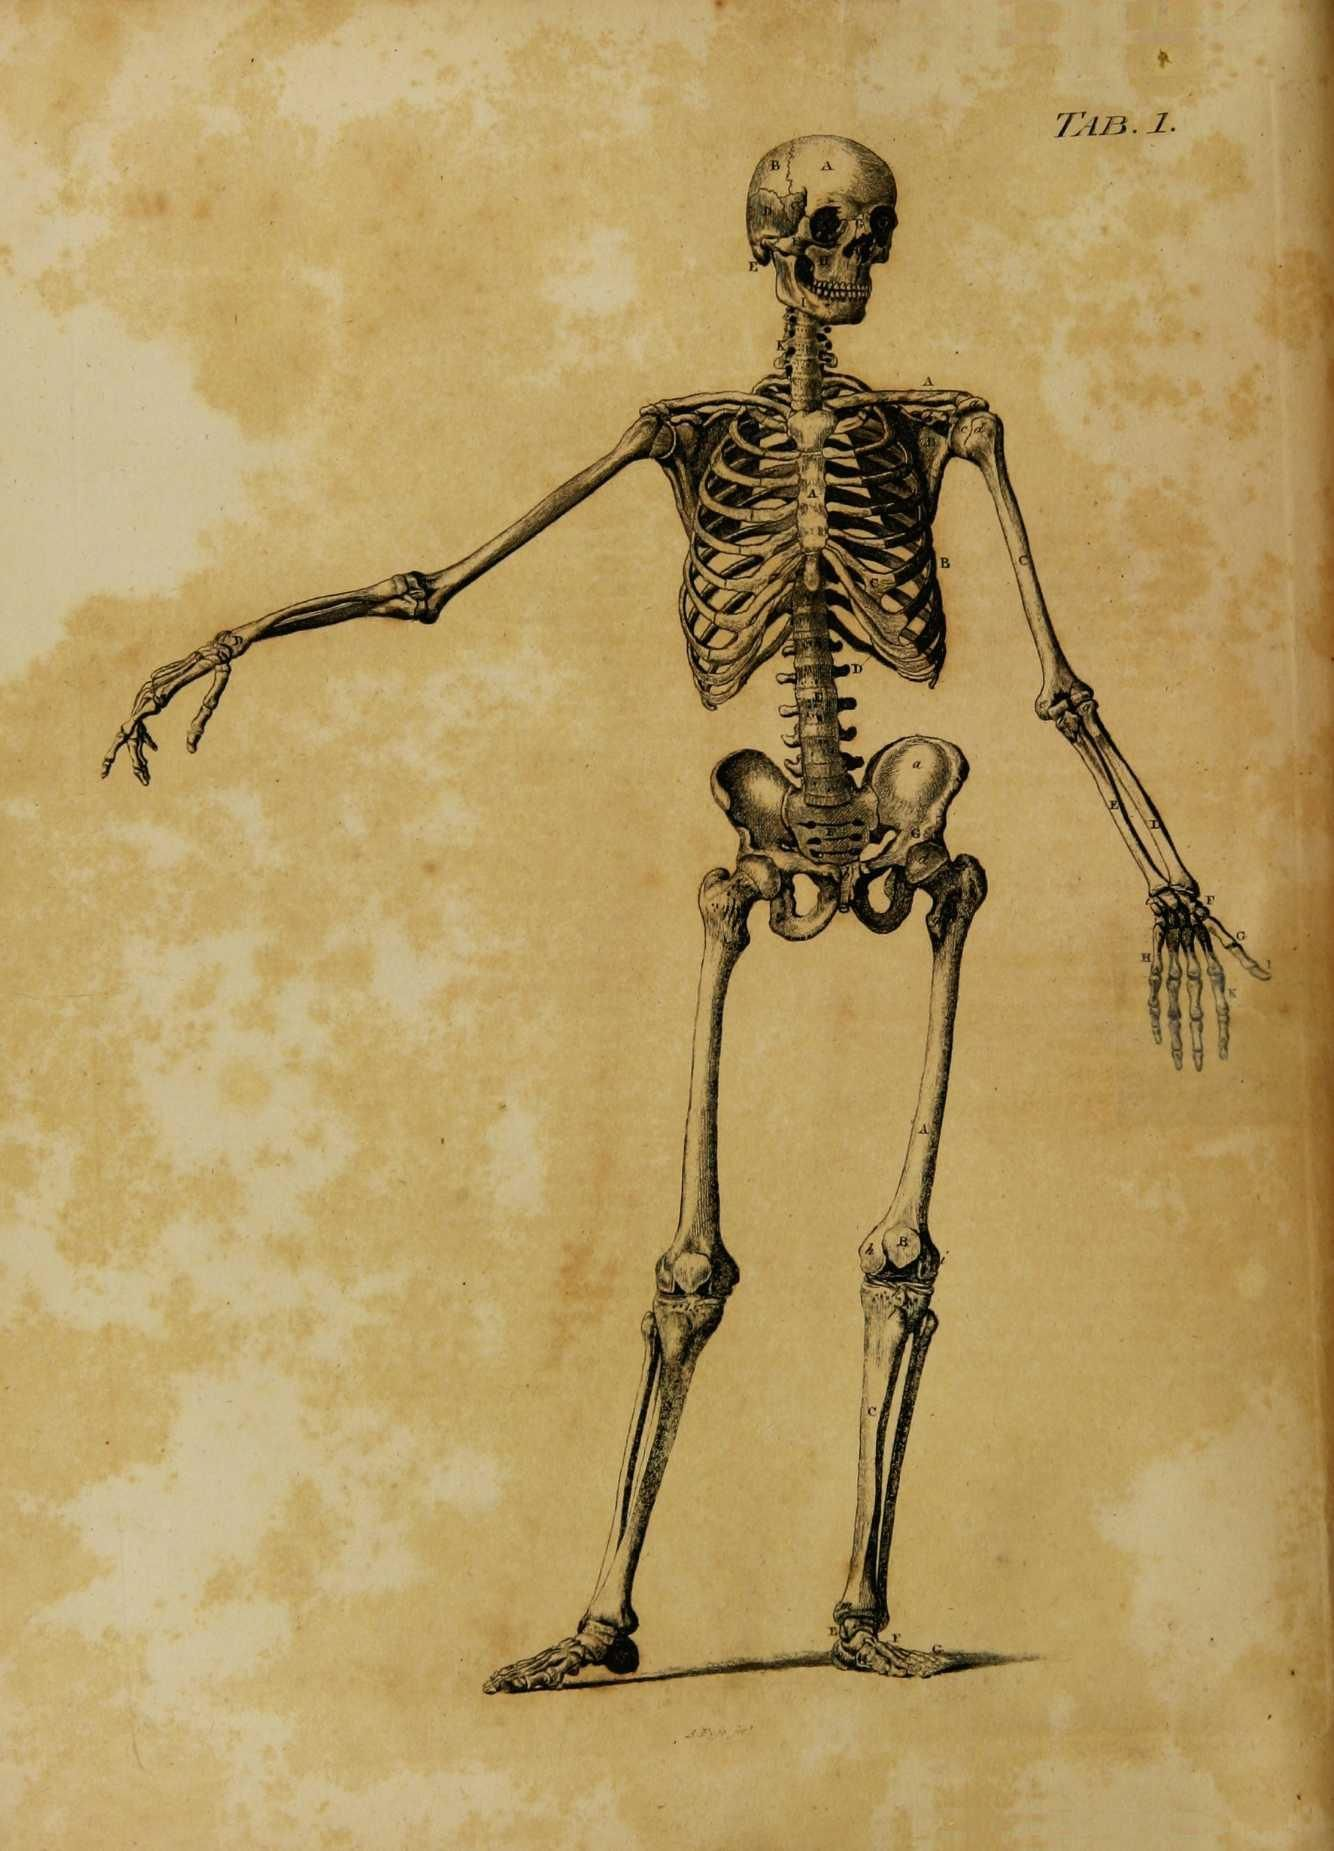 A Back View Of The Male Skeleton With Some Of The Cartilages And